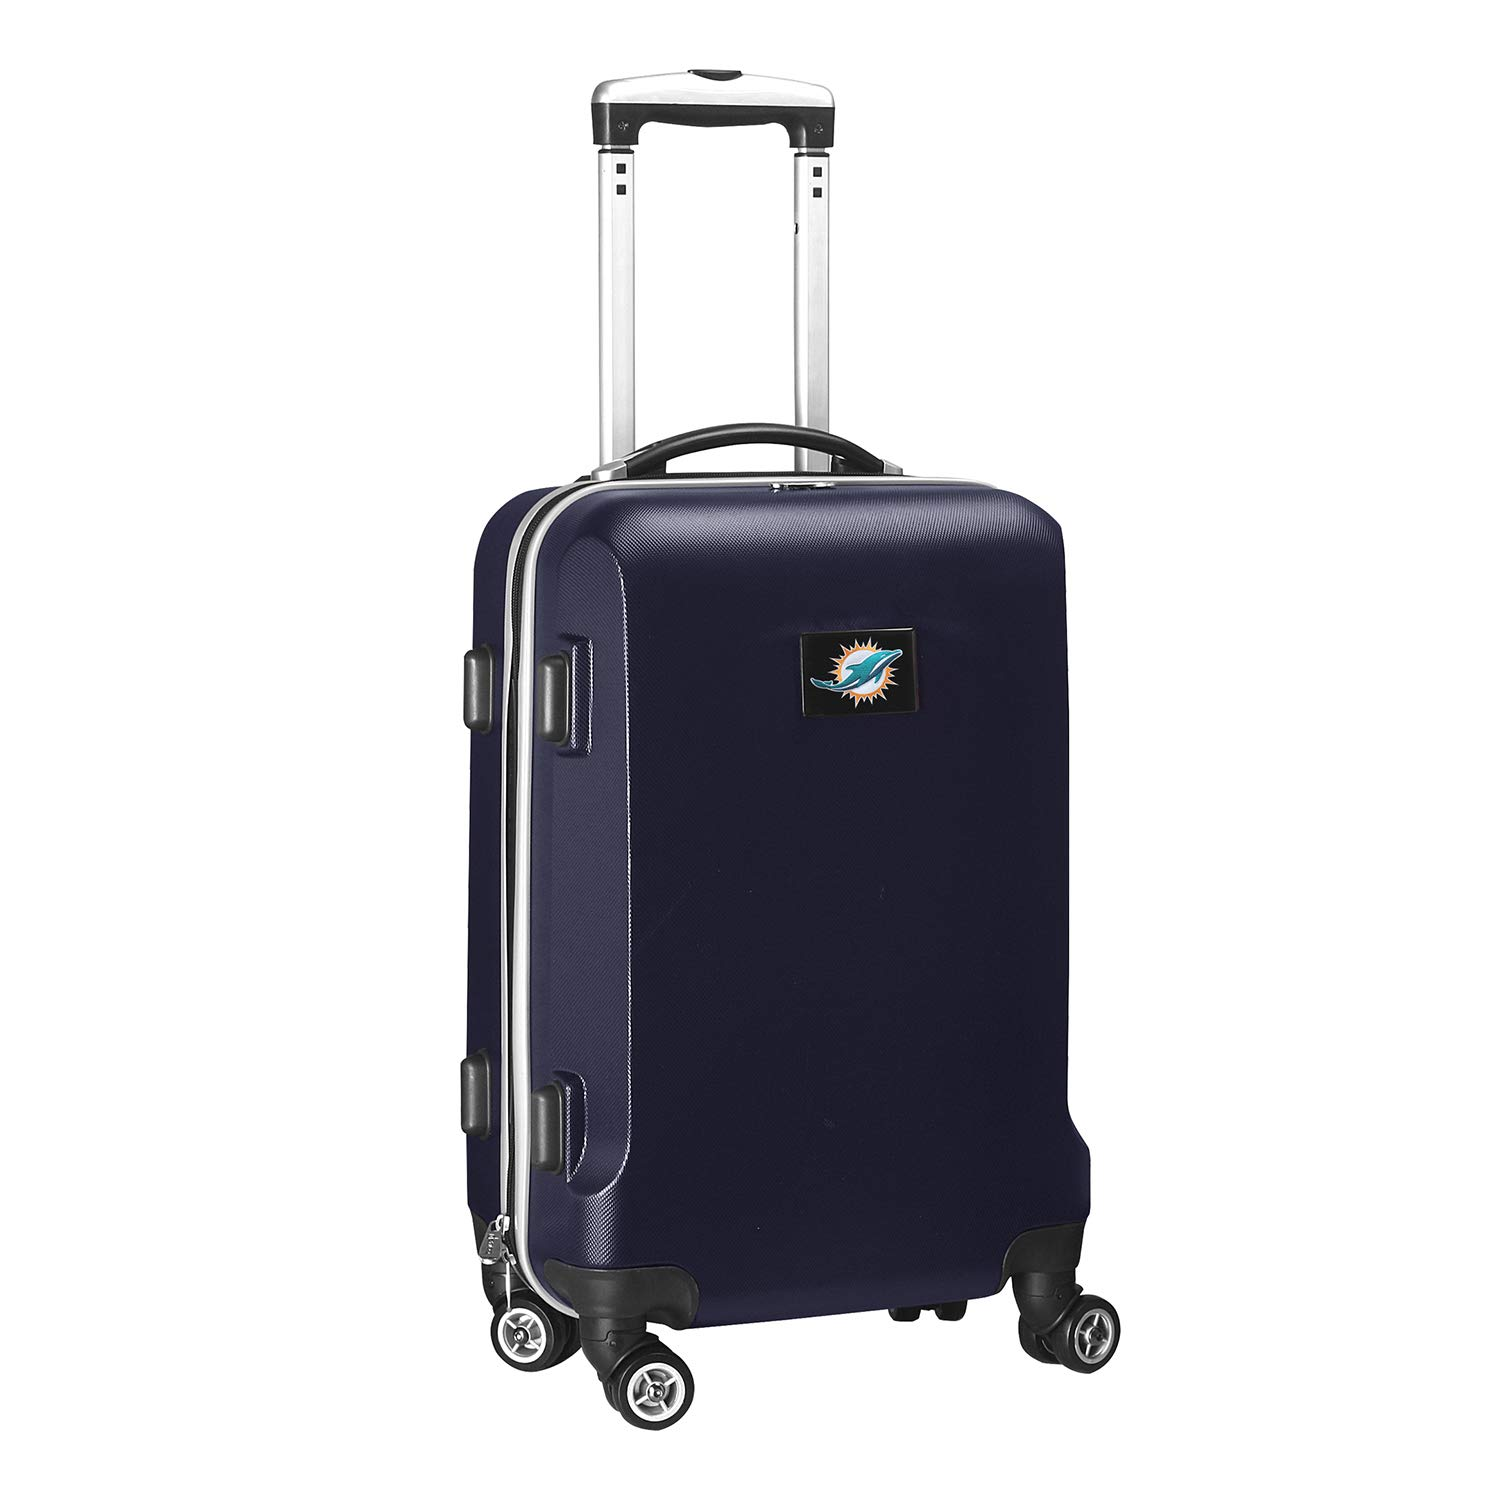 Denco NFL Miami Dolphins Carry-On Hardcase Luggage Spinner, Navy